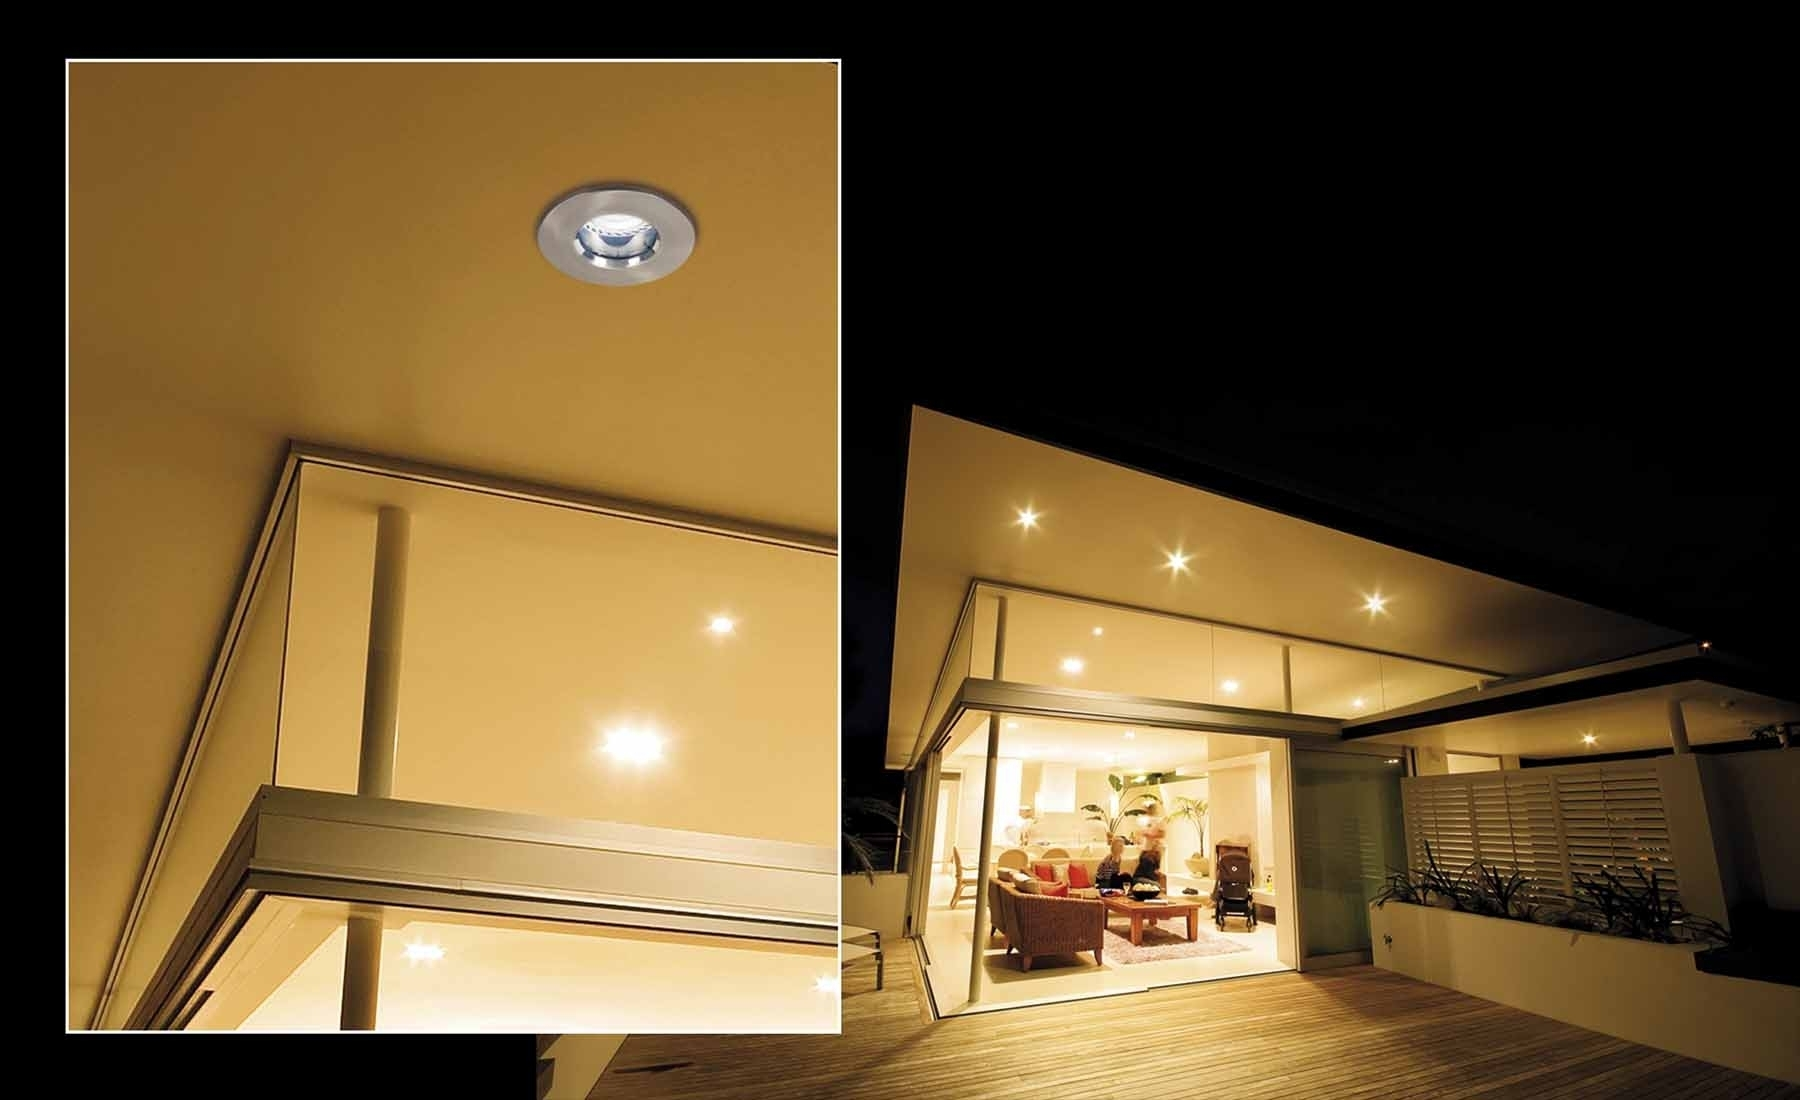 Outdoor Ceiling Lights For Patio • Outdoor Lighting Throughout Outdoor Ceiling Lights For Patio (#13 of 15)